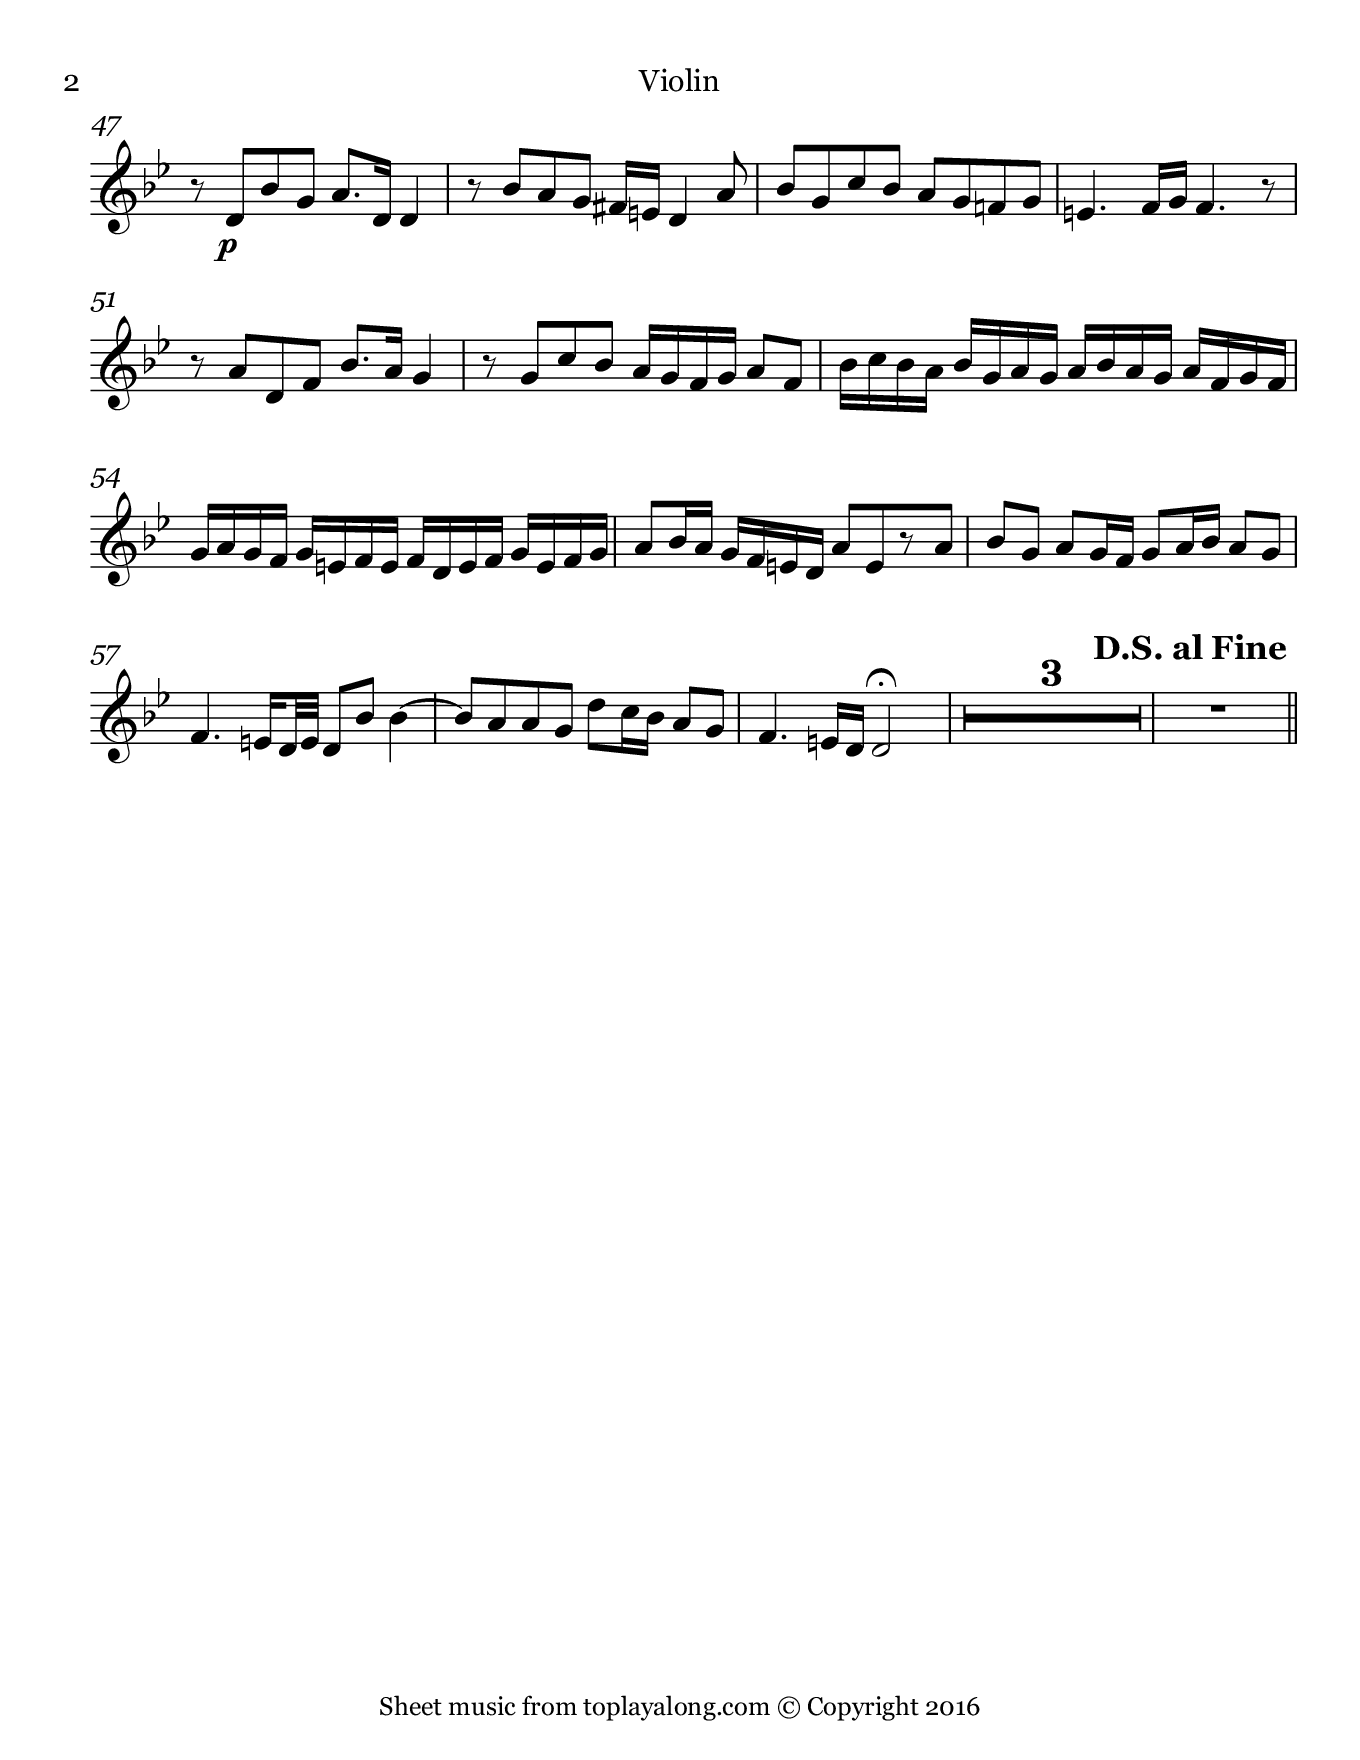 Fammi Combattere from Orlando by Handel. Sheet music for Violin, page 2.